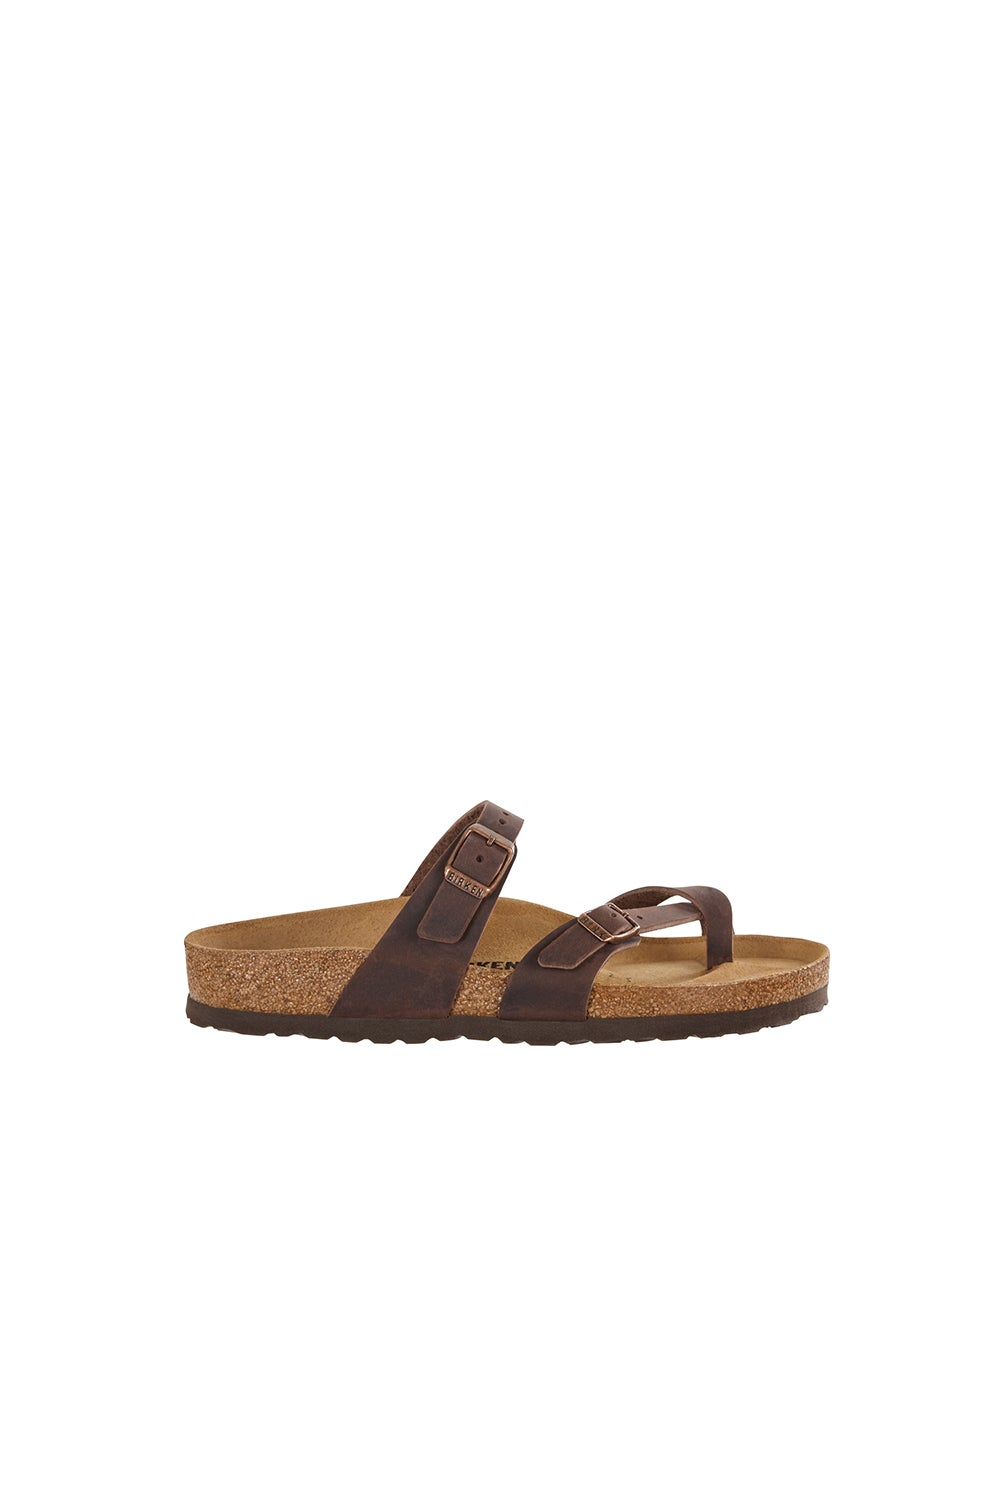 Birkenstock Mayari Oiled Leather Regular Fit Habana